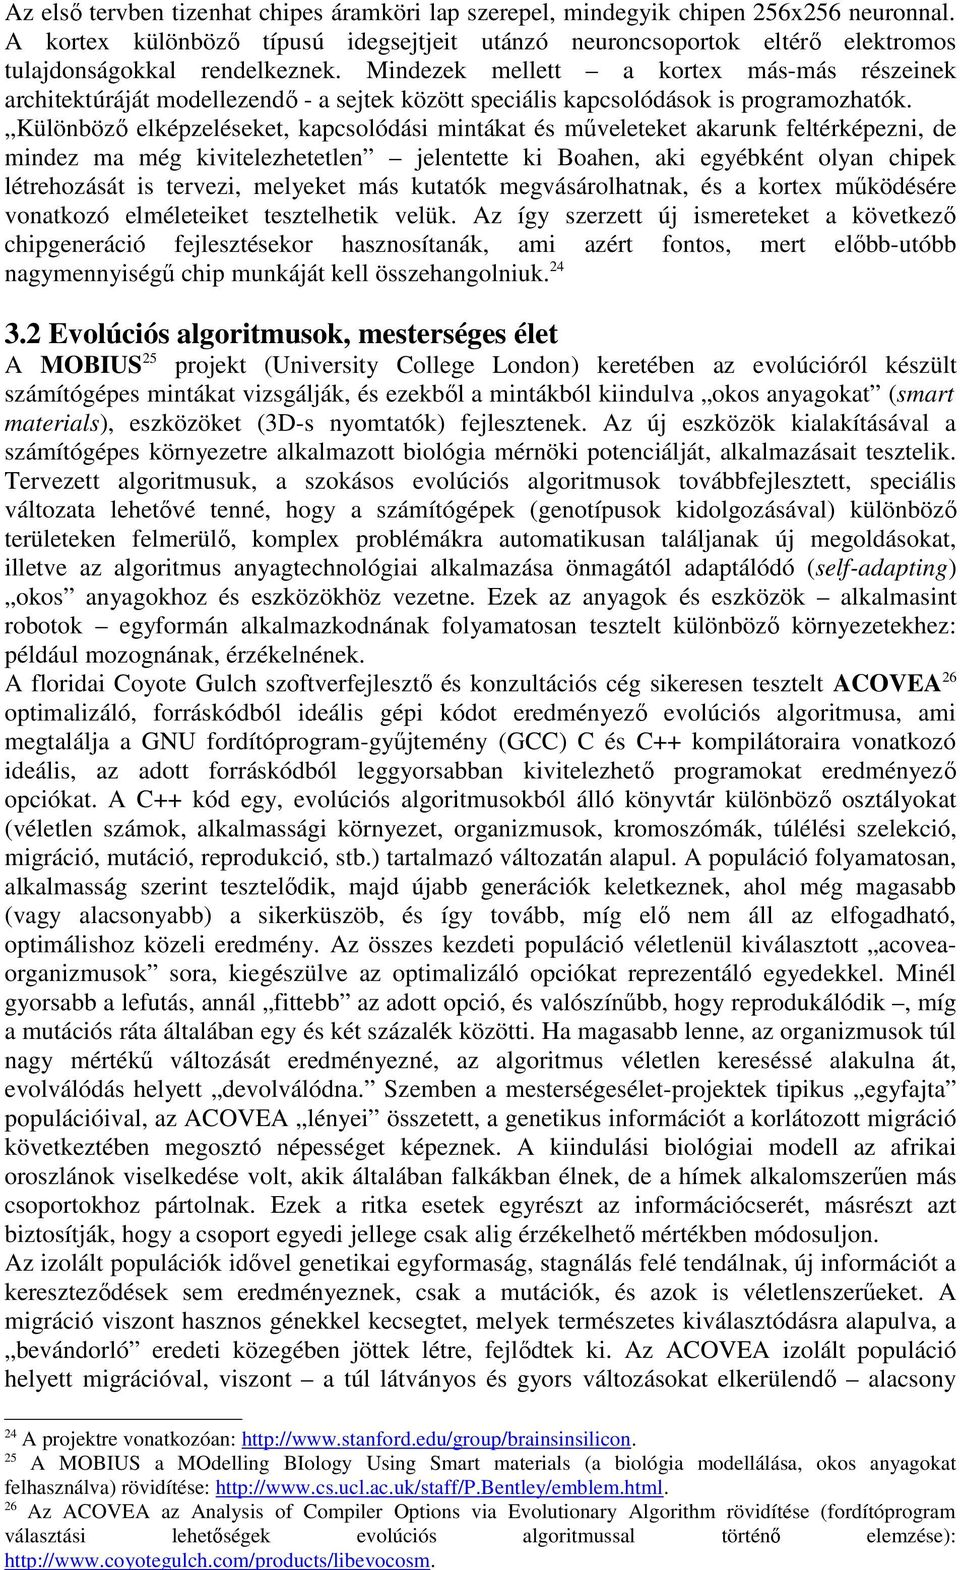 26 Az ACOVEA az Analysis of Compiler Options via Evolutionary Algorithm rövidítése (fordítóprogram választási lehetőségek evolúciós algoritmussal történő elemzése): http://www.coyotegulch.